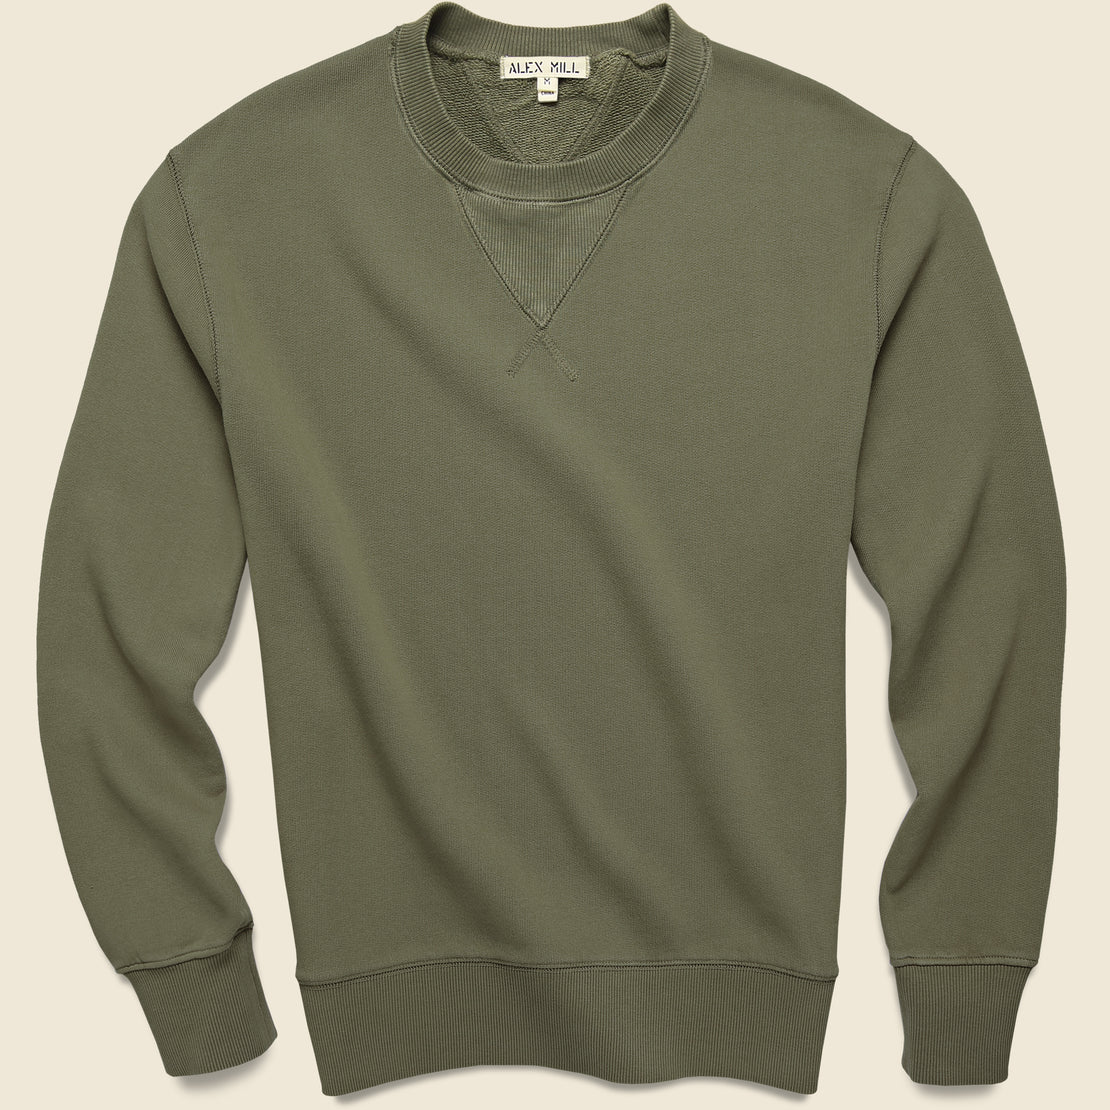 Alex Mill Crew Neck Sweatshirt - Olive